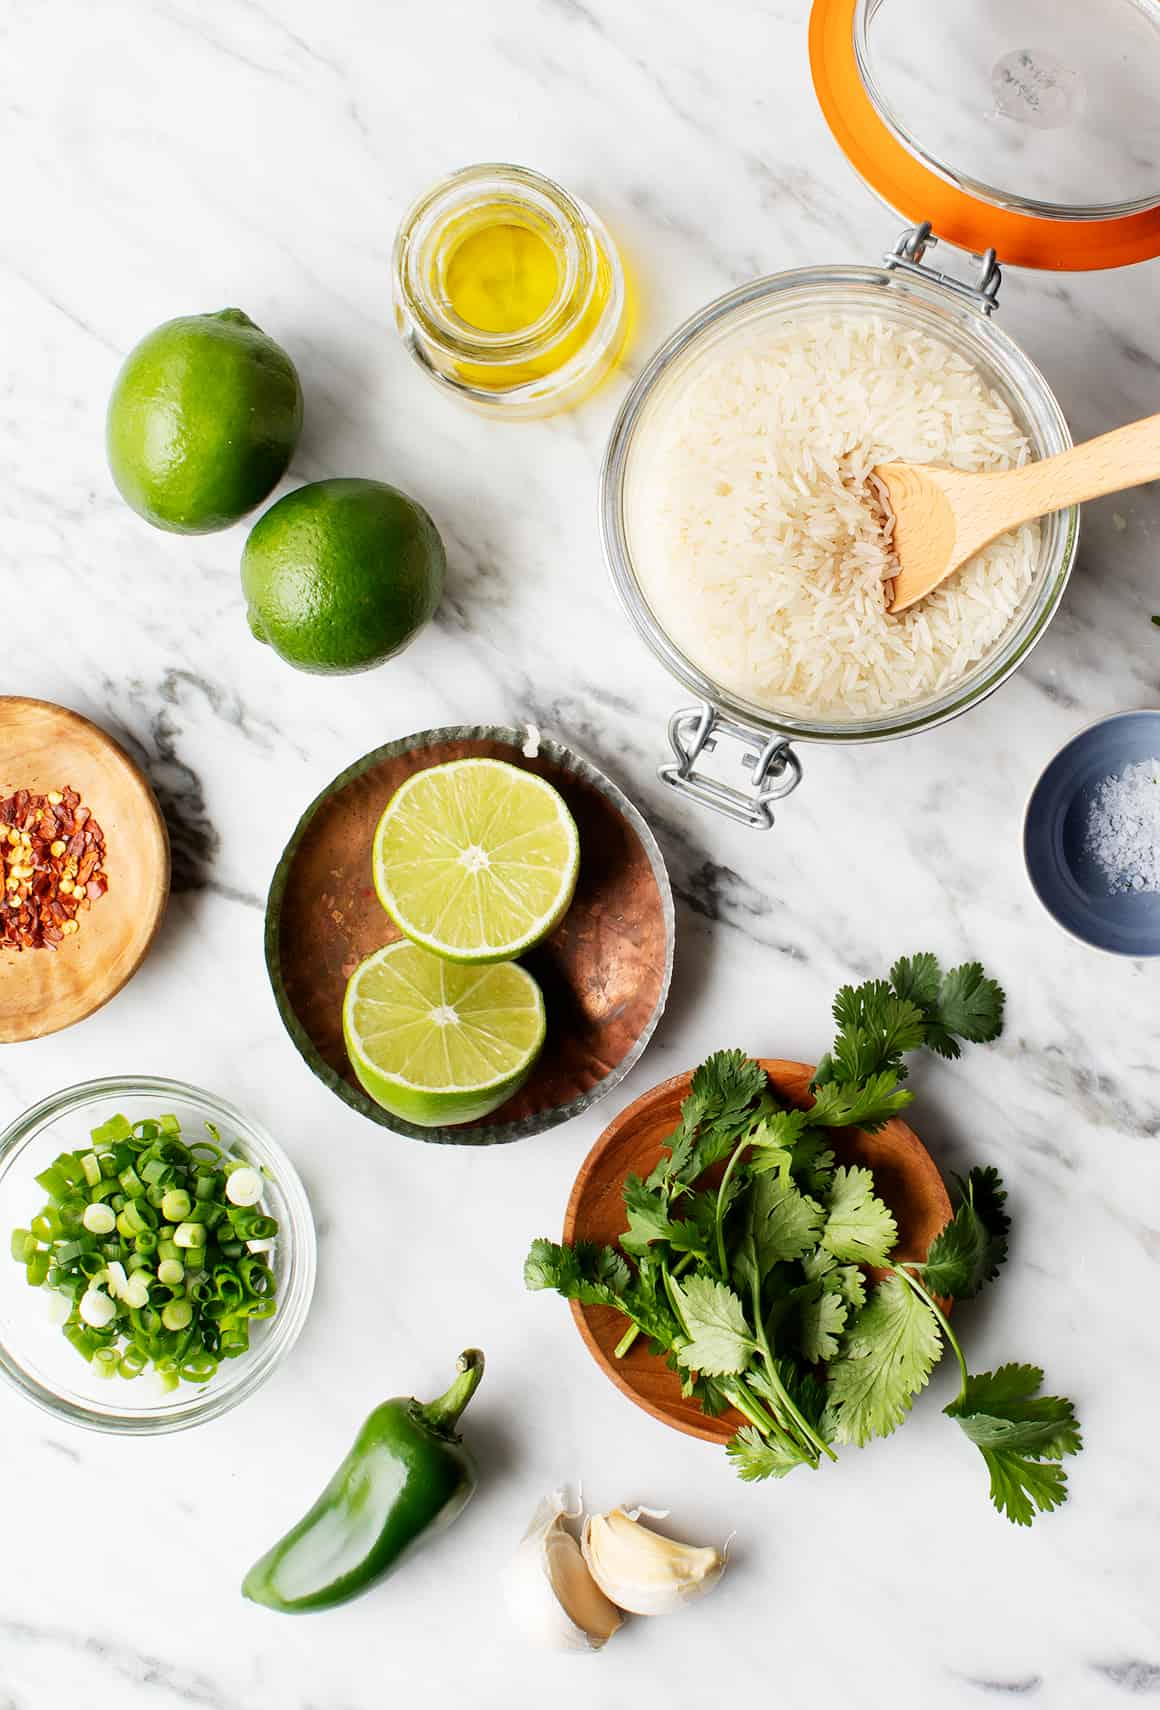 Cilantro Lime Rice Recipe Ingredients